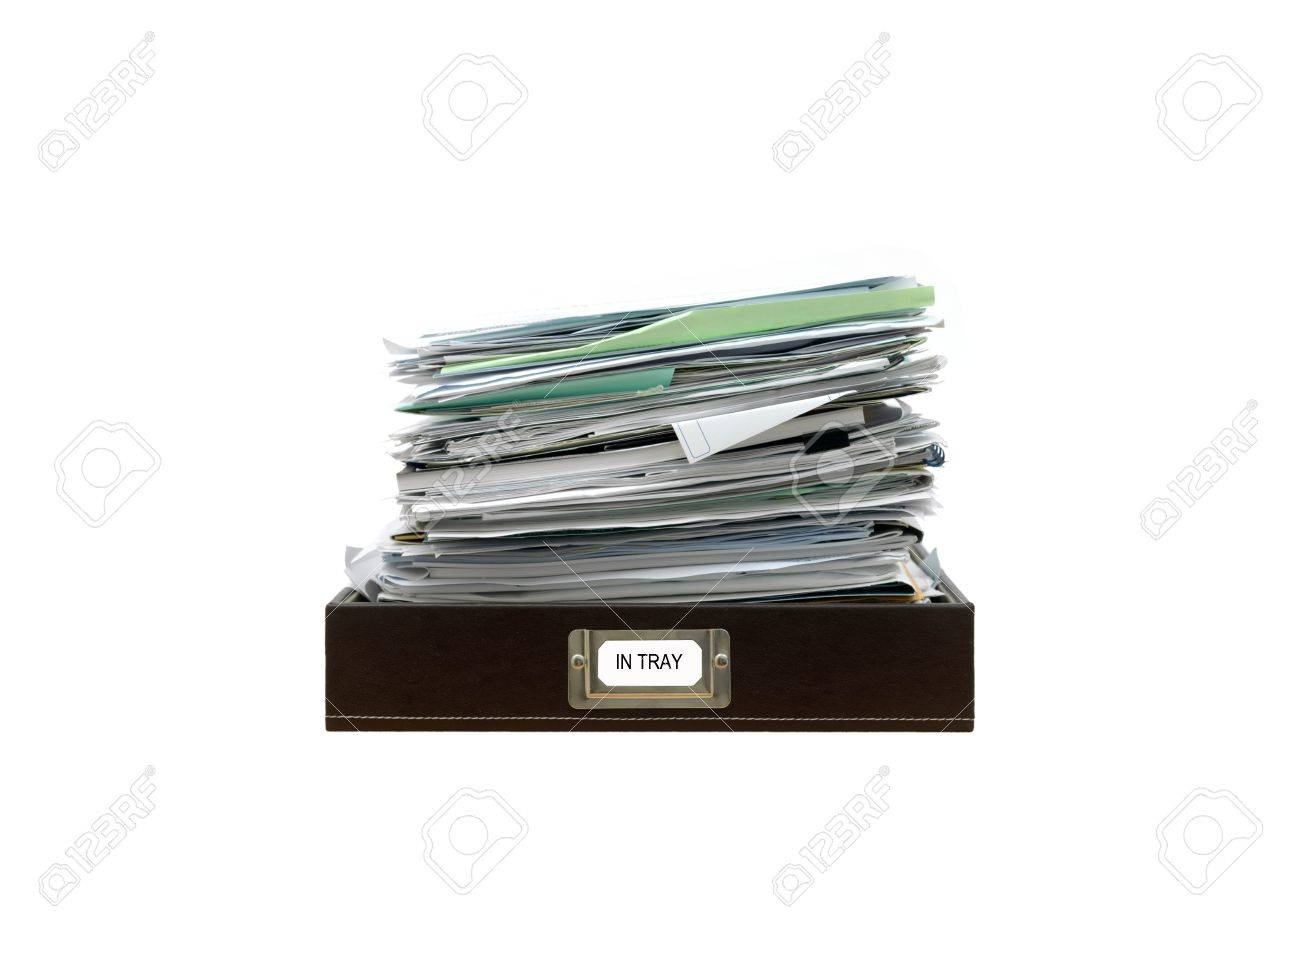 Office paper trays isolated against a white background Stock Photo - 13110564